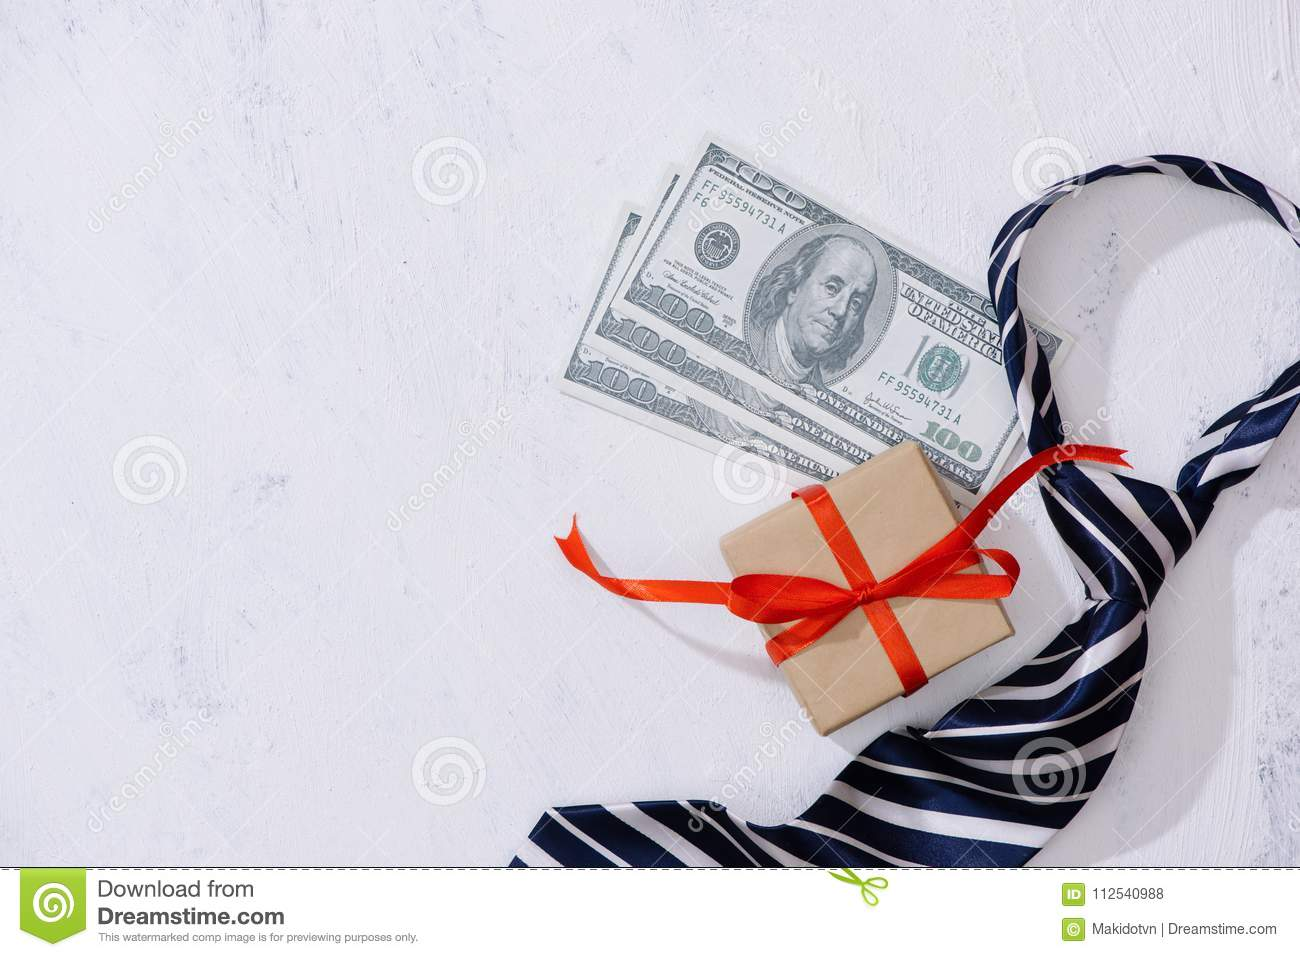 Money saving xmas gifts for dad